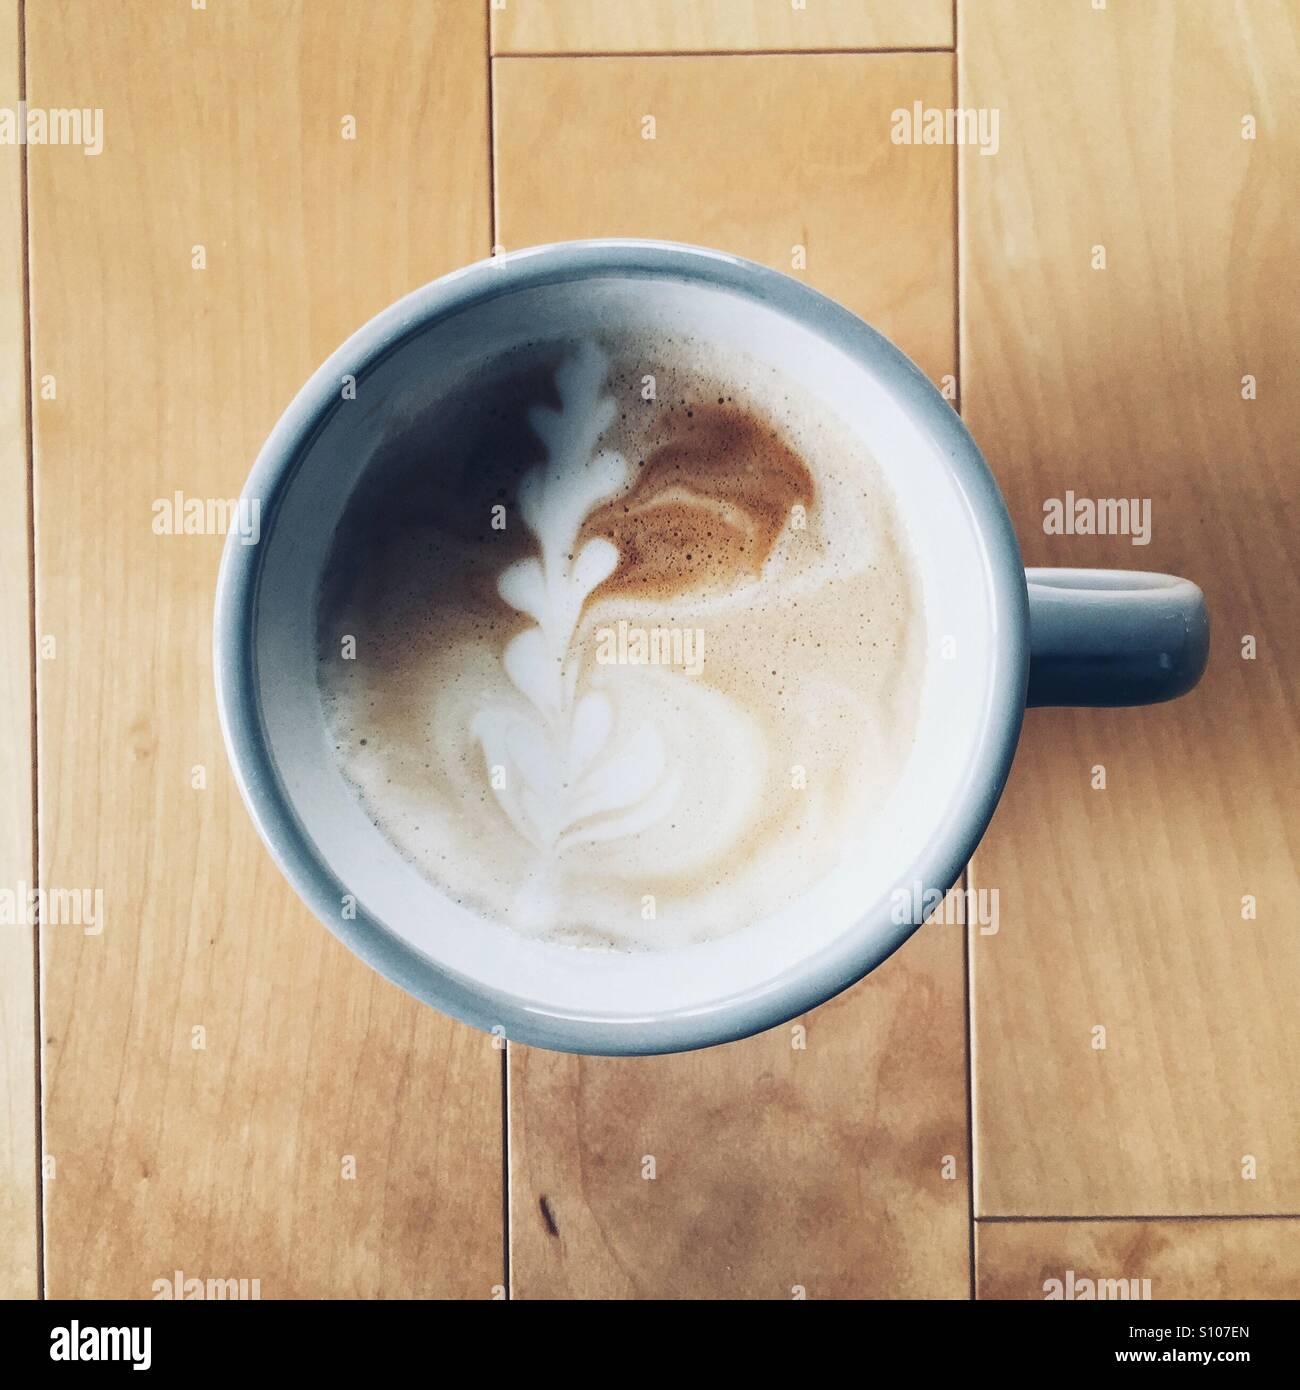 Cup of Latte - Stock Image